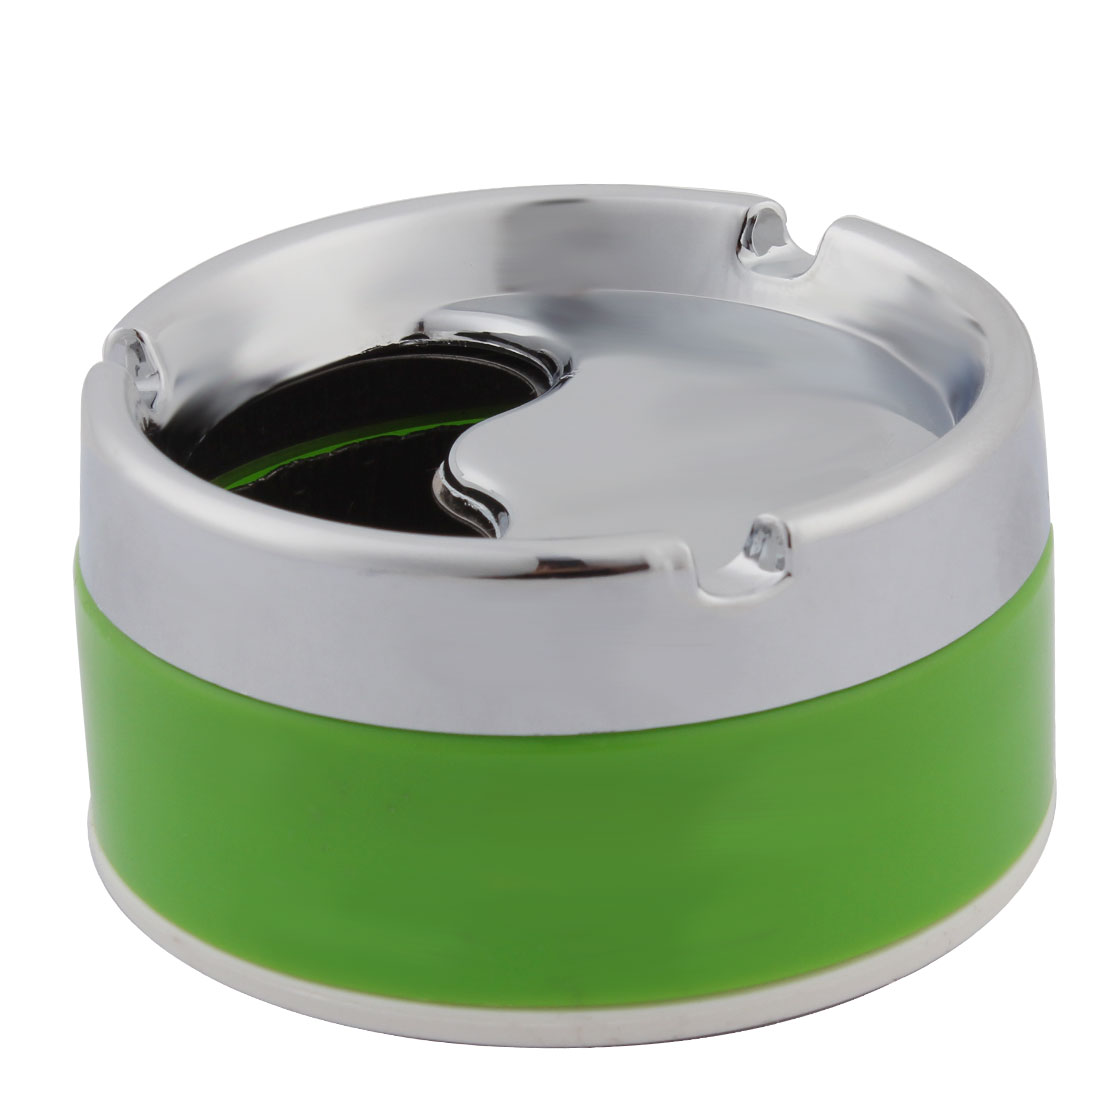 Household 3 Grooves Design Rotatable Cigarette Holder Ashtray Container Green